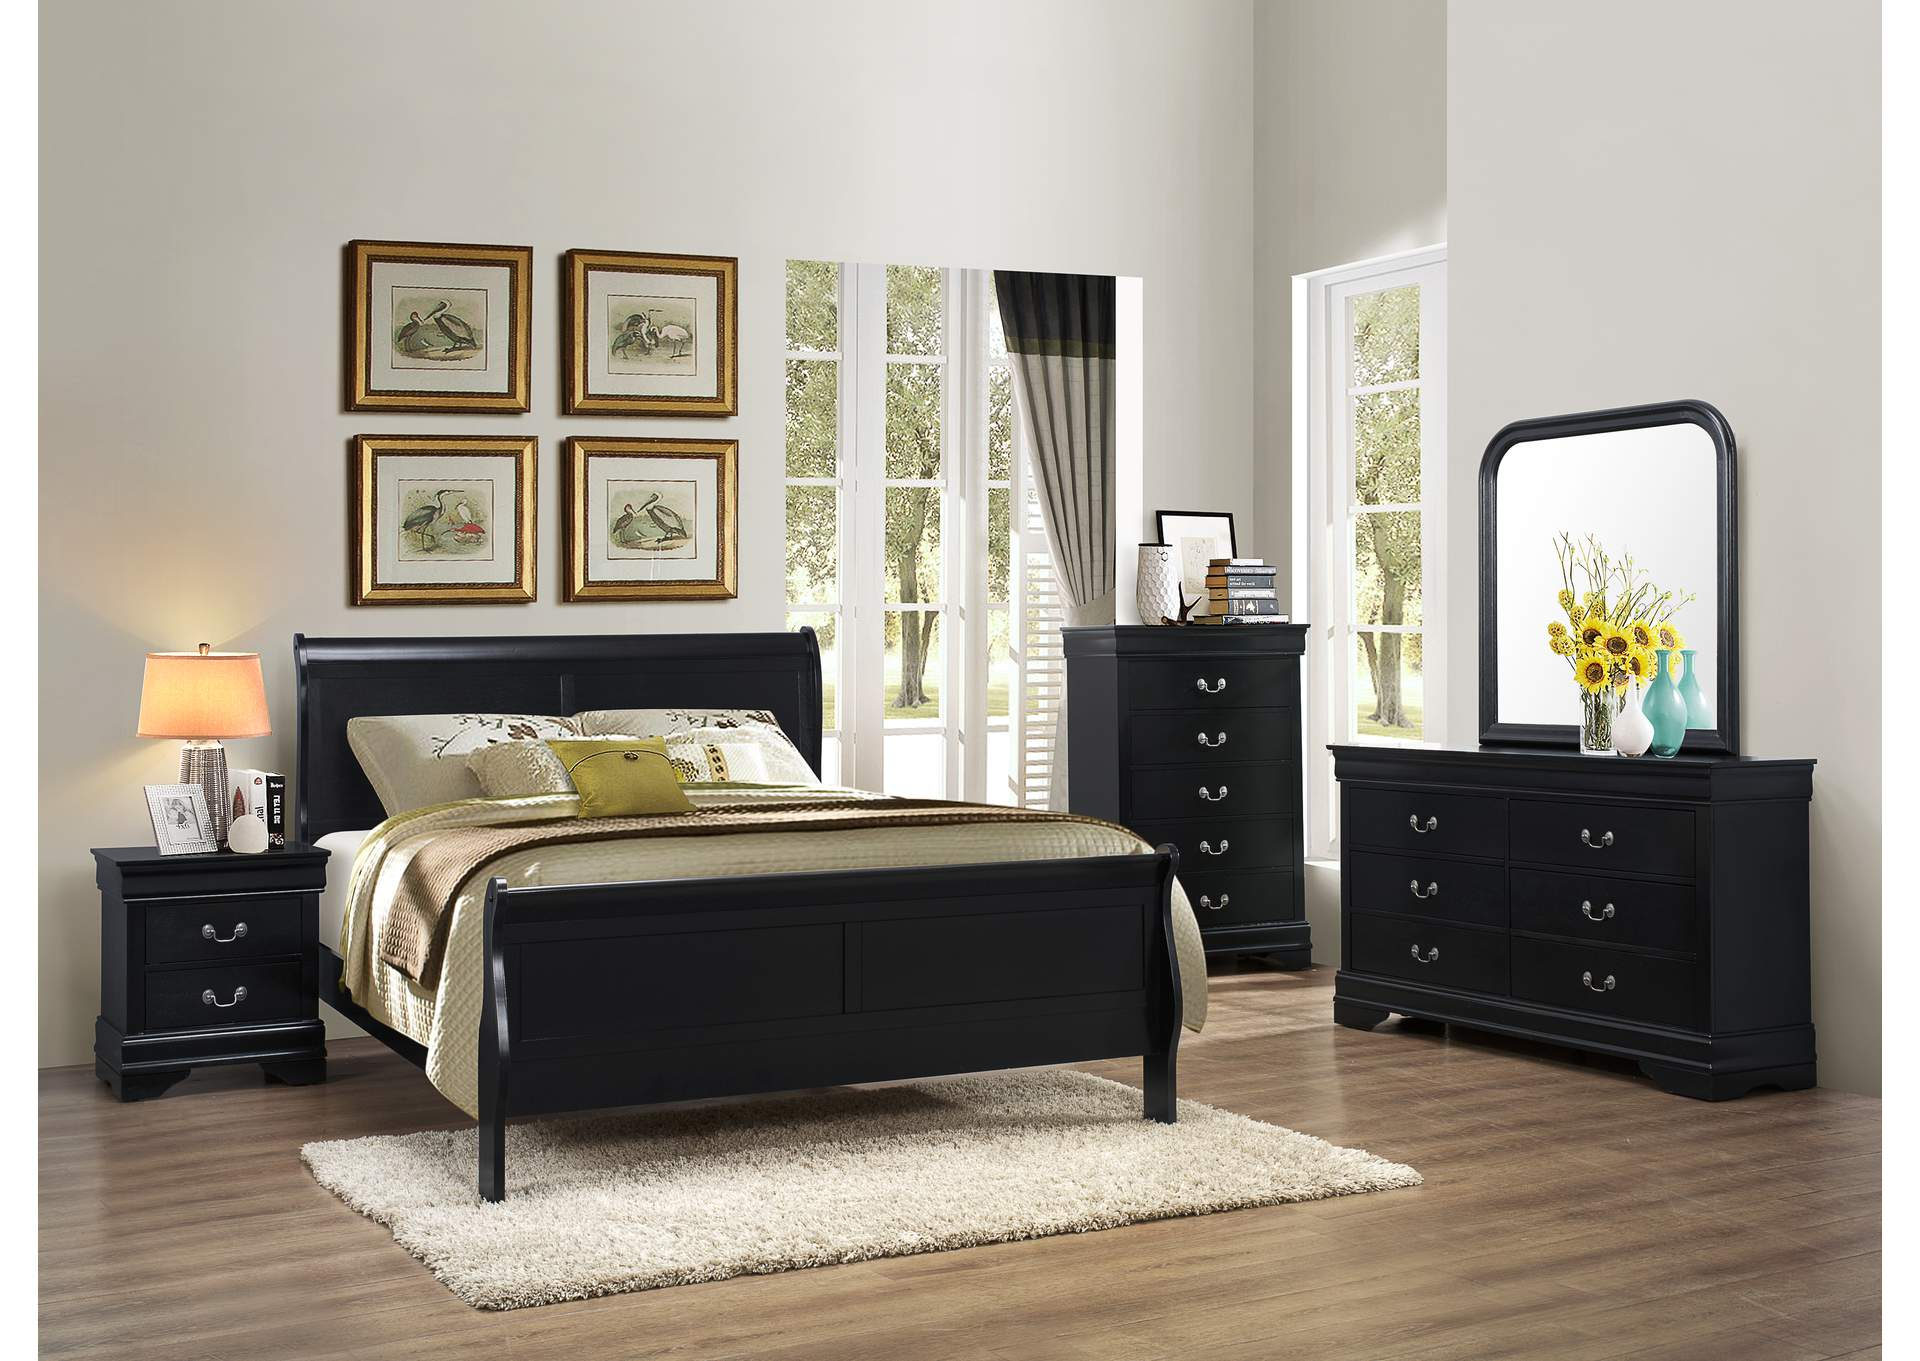 Black Sleigh Queen 5 Piece Bedroom Set W/ Nightstand, Chest, Dresser & Mirror,Global Trading